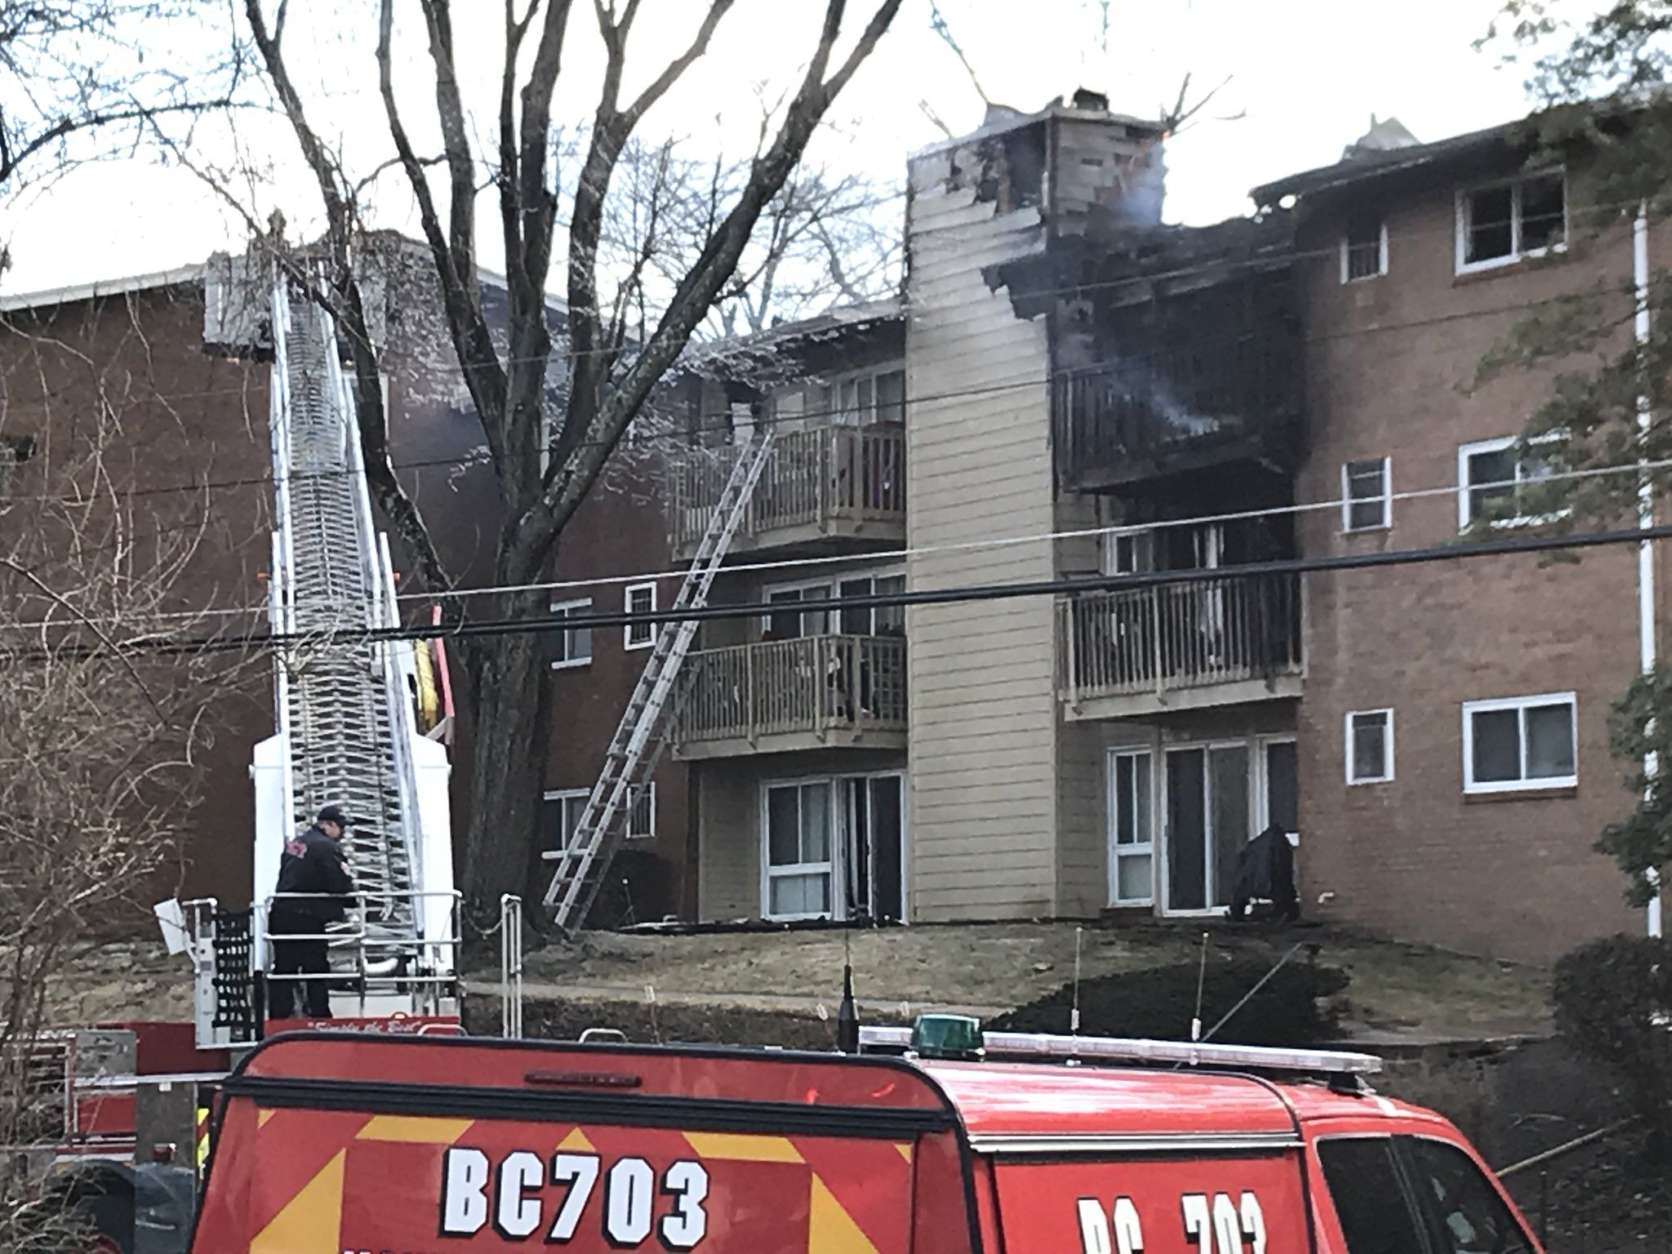 Firefighters say no one was injured in the fire at the Fireside Park Apartments, in Rockville. (WTOP/Michelle Basch)